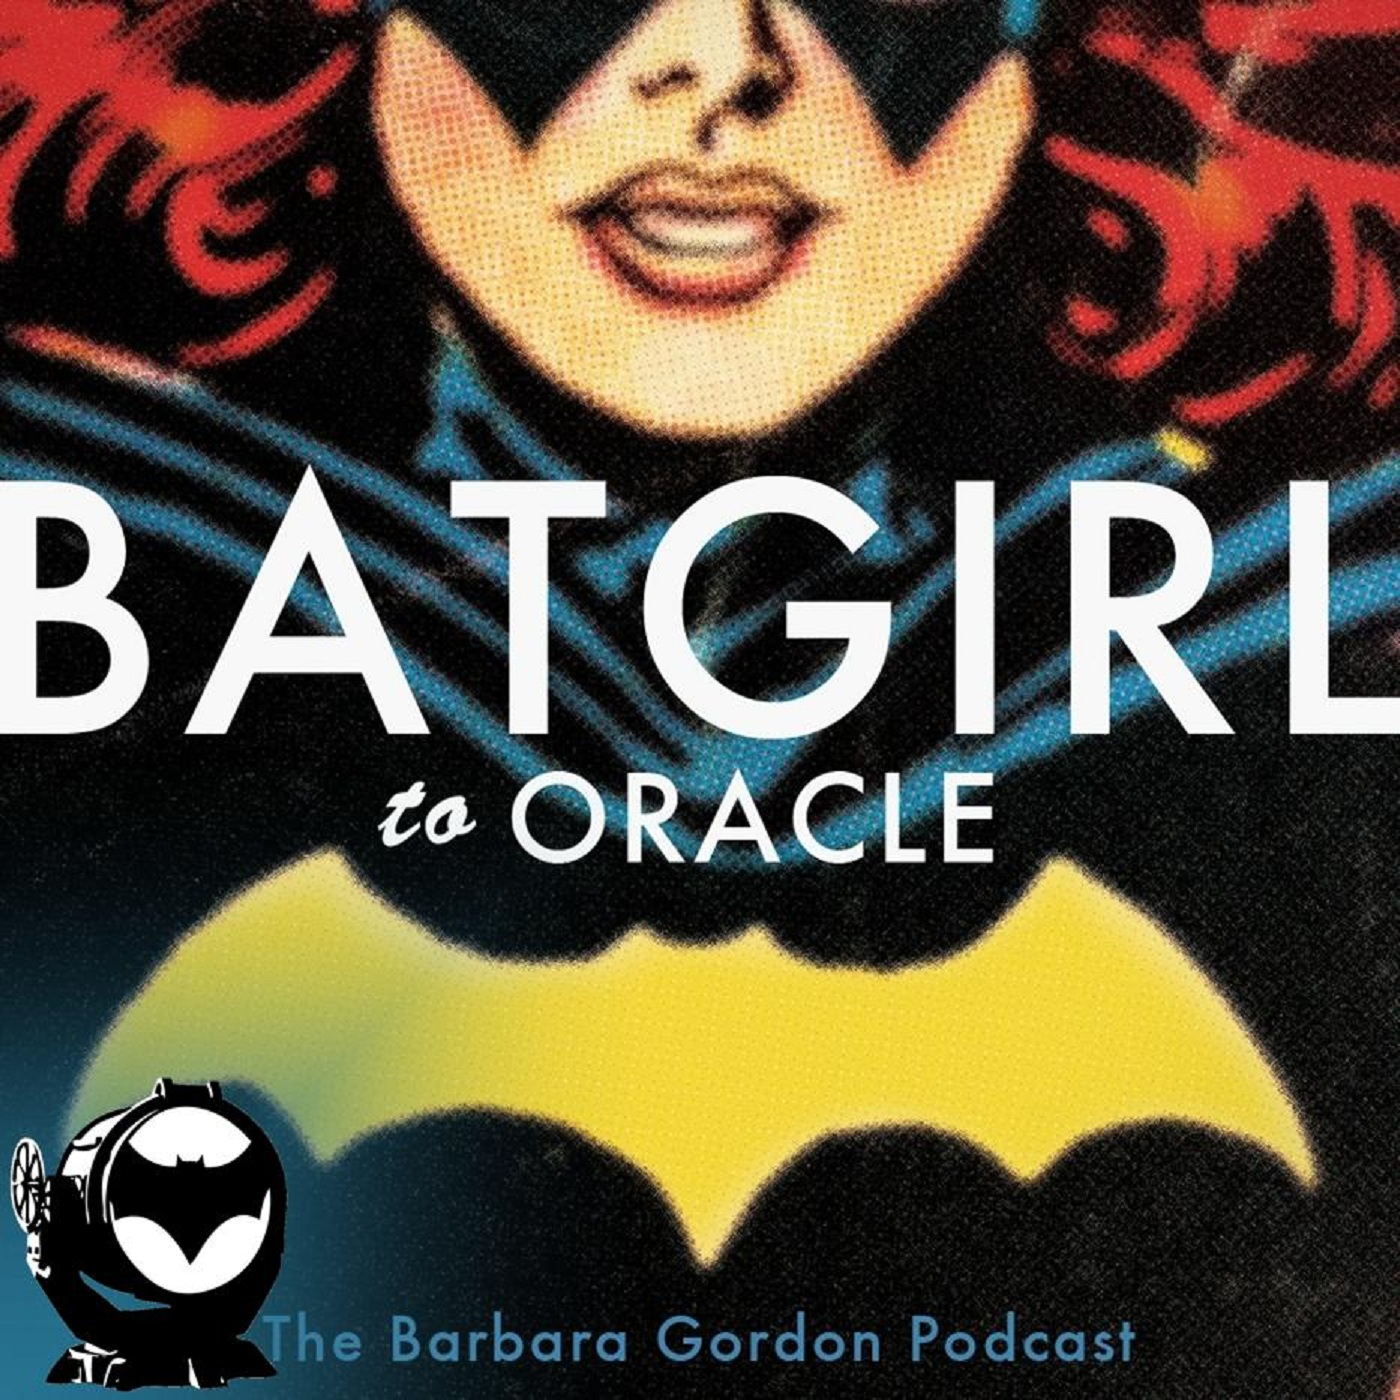 Batgirl to Oracle: A Barbara Gordon Podcast